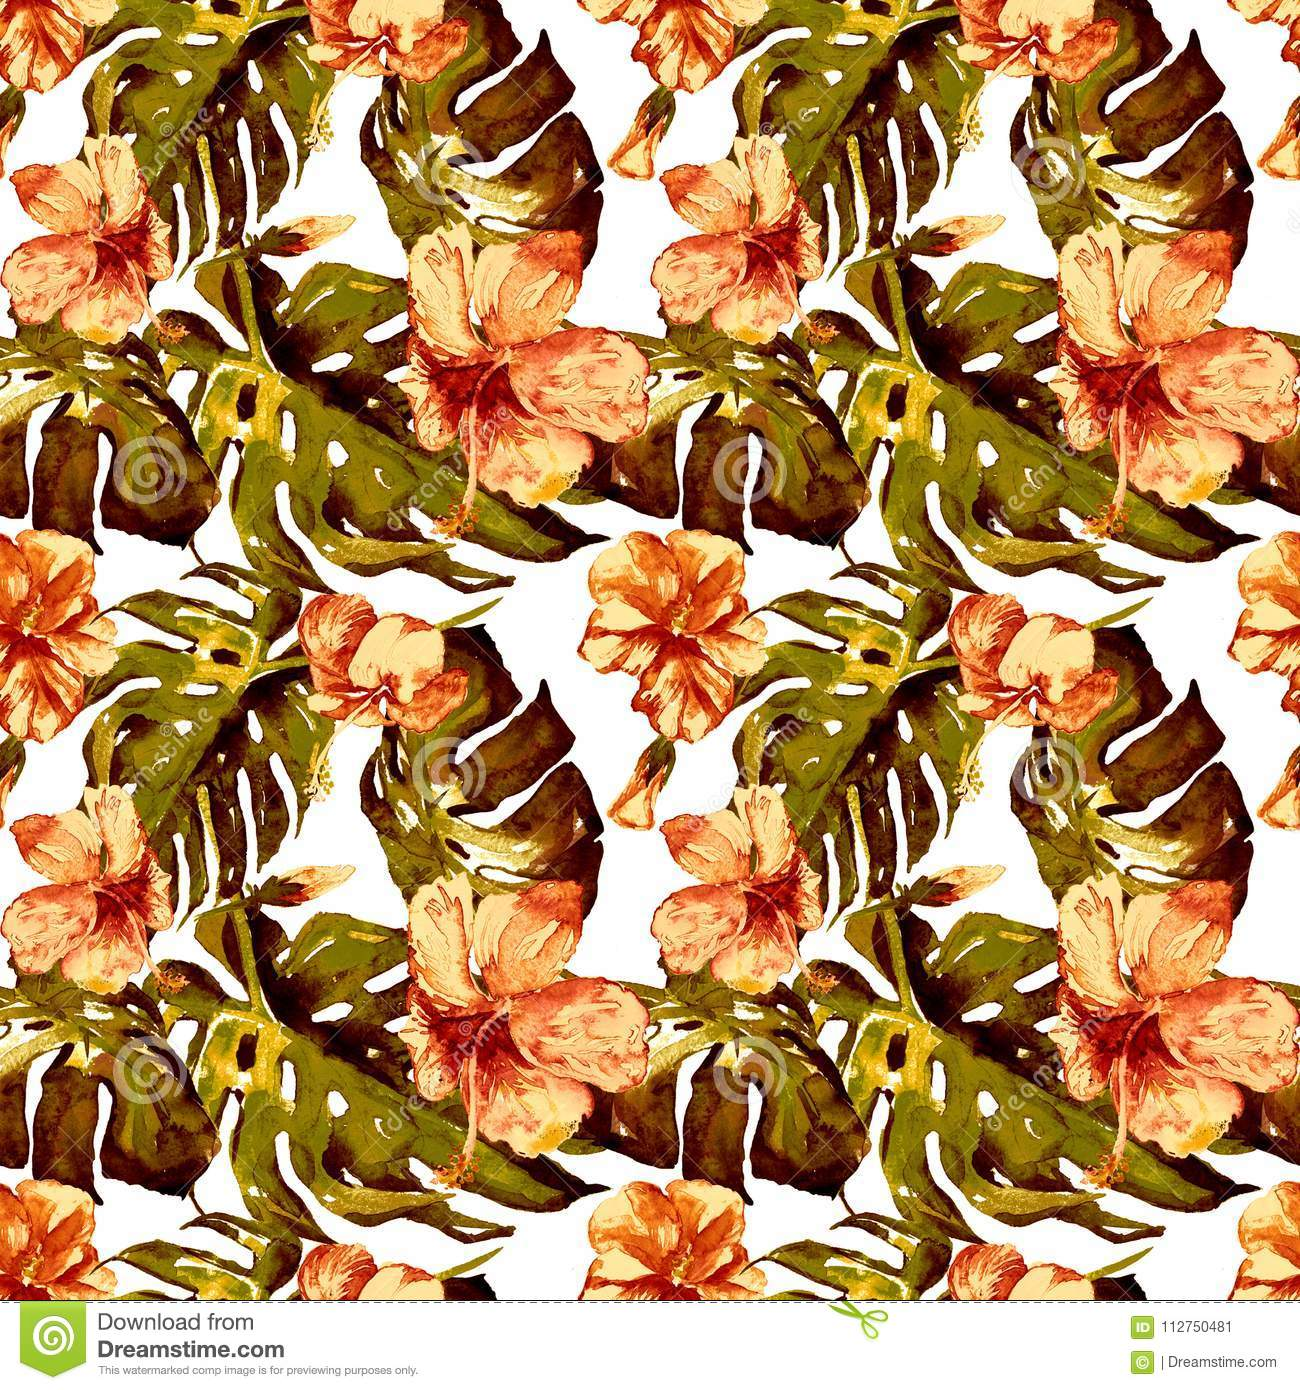 Exotic flowers watercolor seamless pattern stock illustration royalty free stock photo izmirmasajfo Images